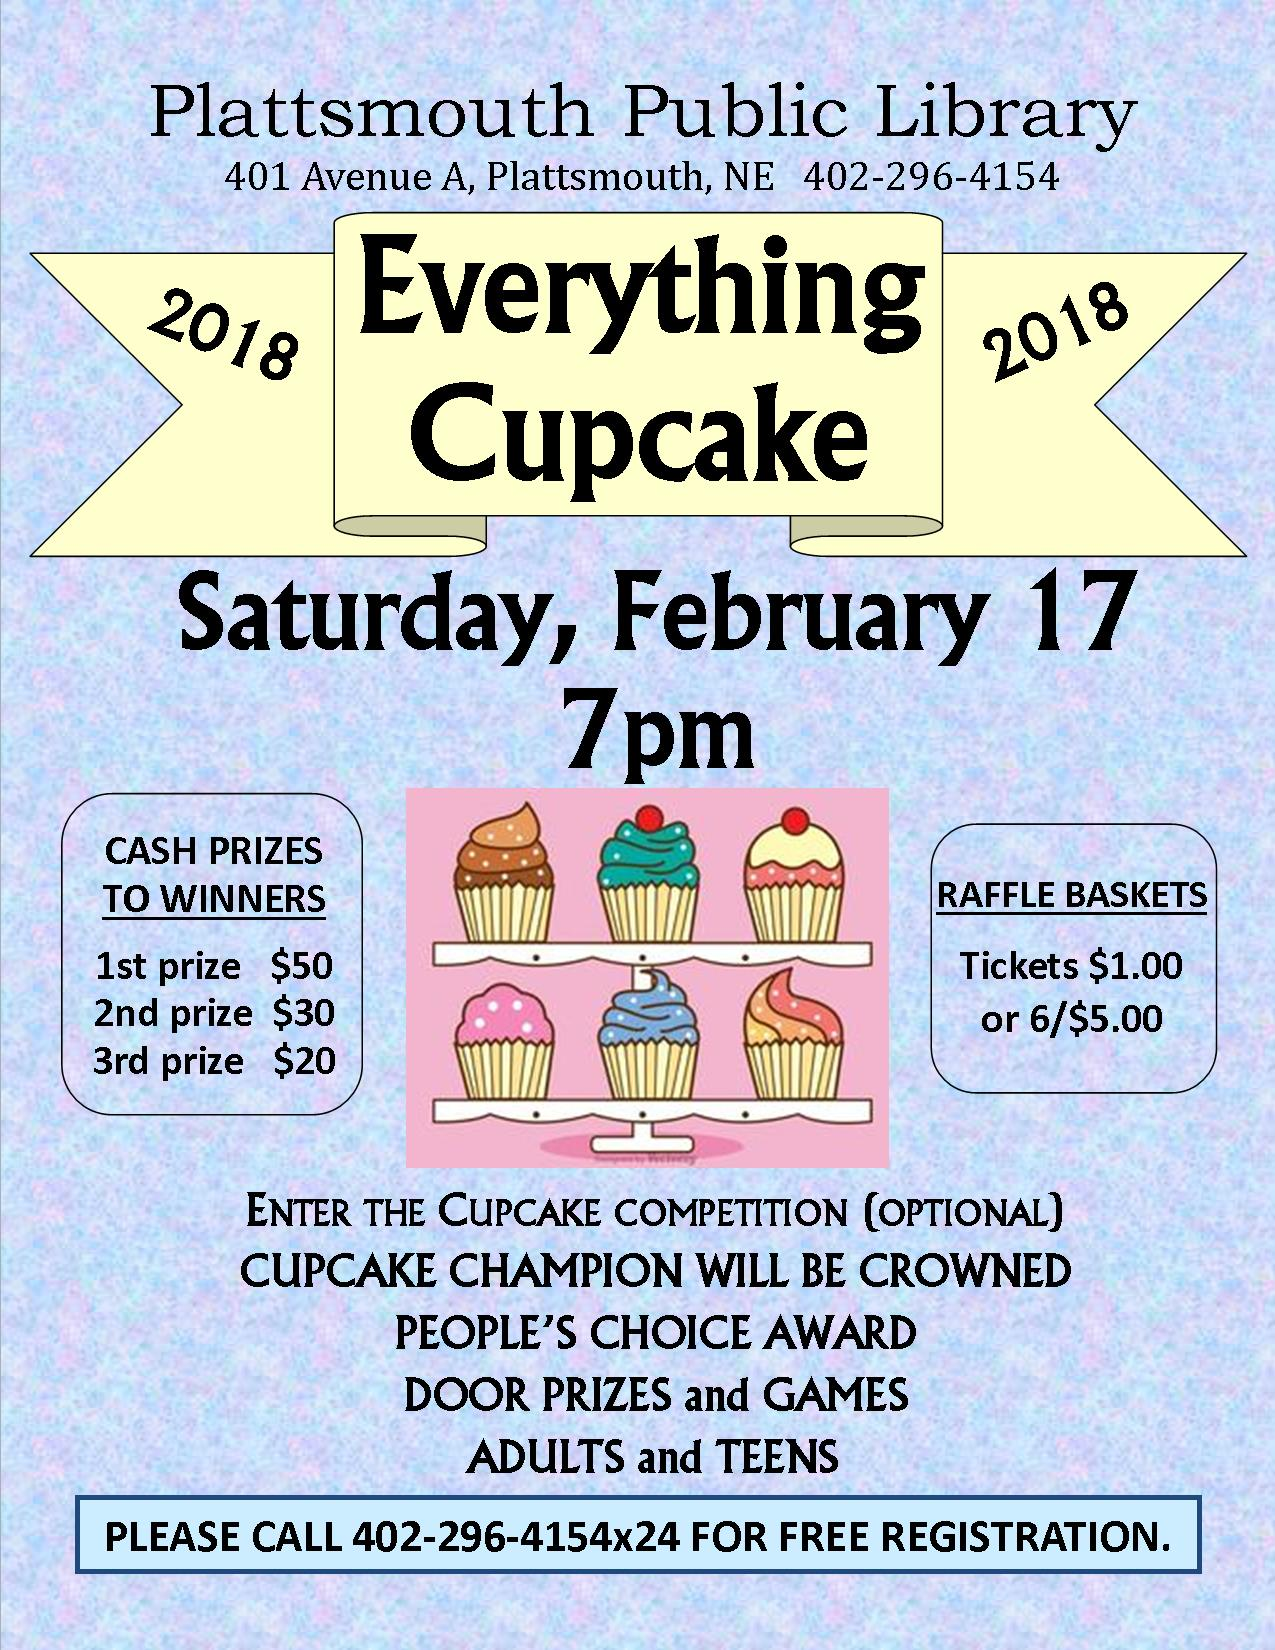 Everything Cupcake 20183237